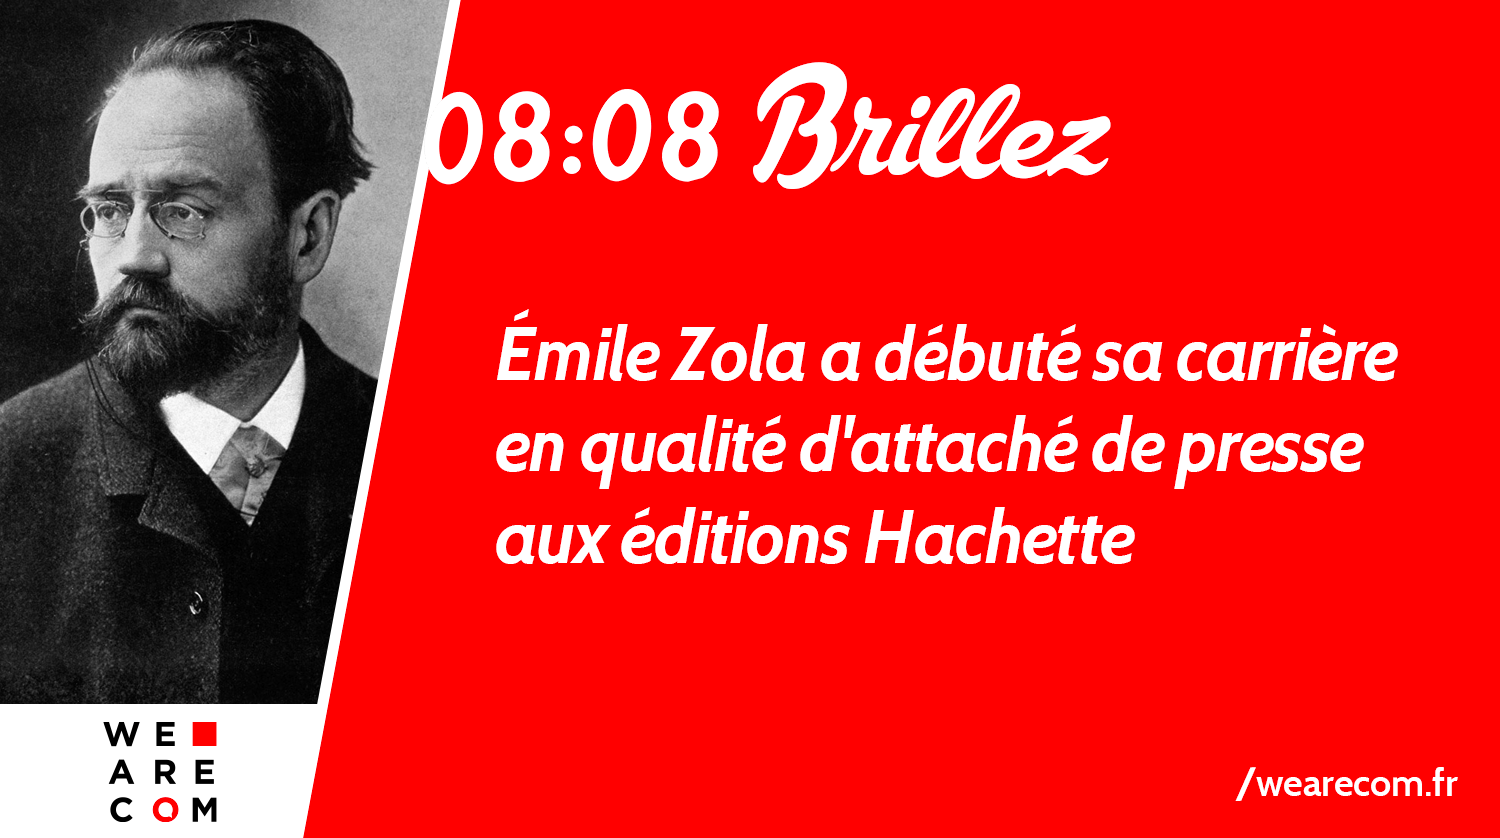 Emile-Zola_WeAreCOM_Relations_Presse_Savoir_Communication